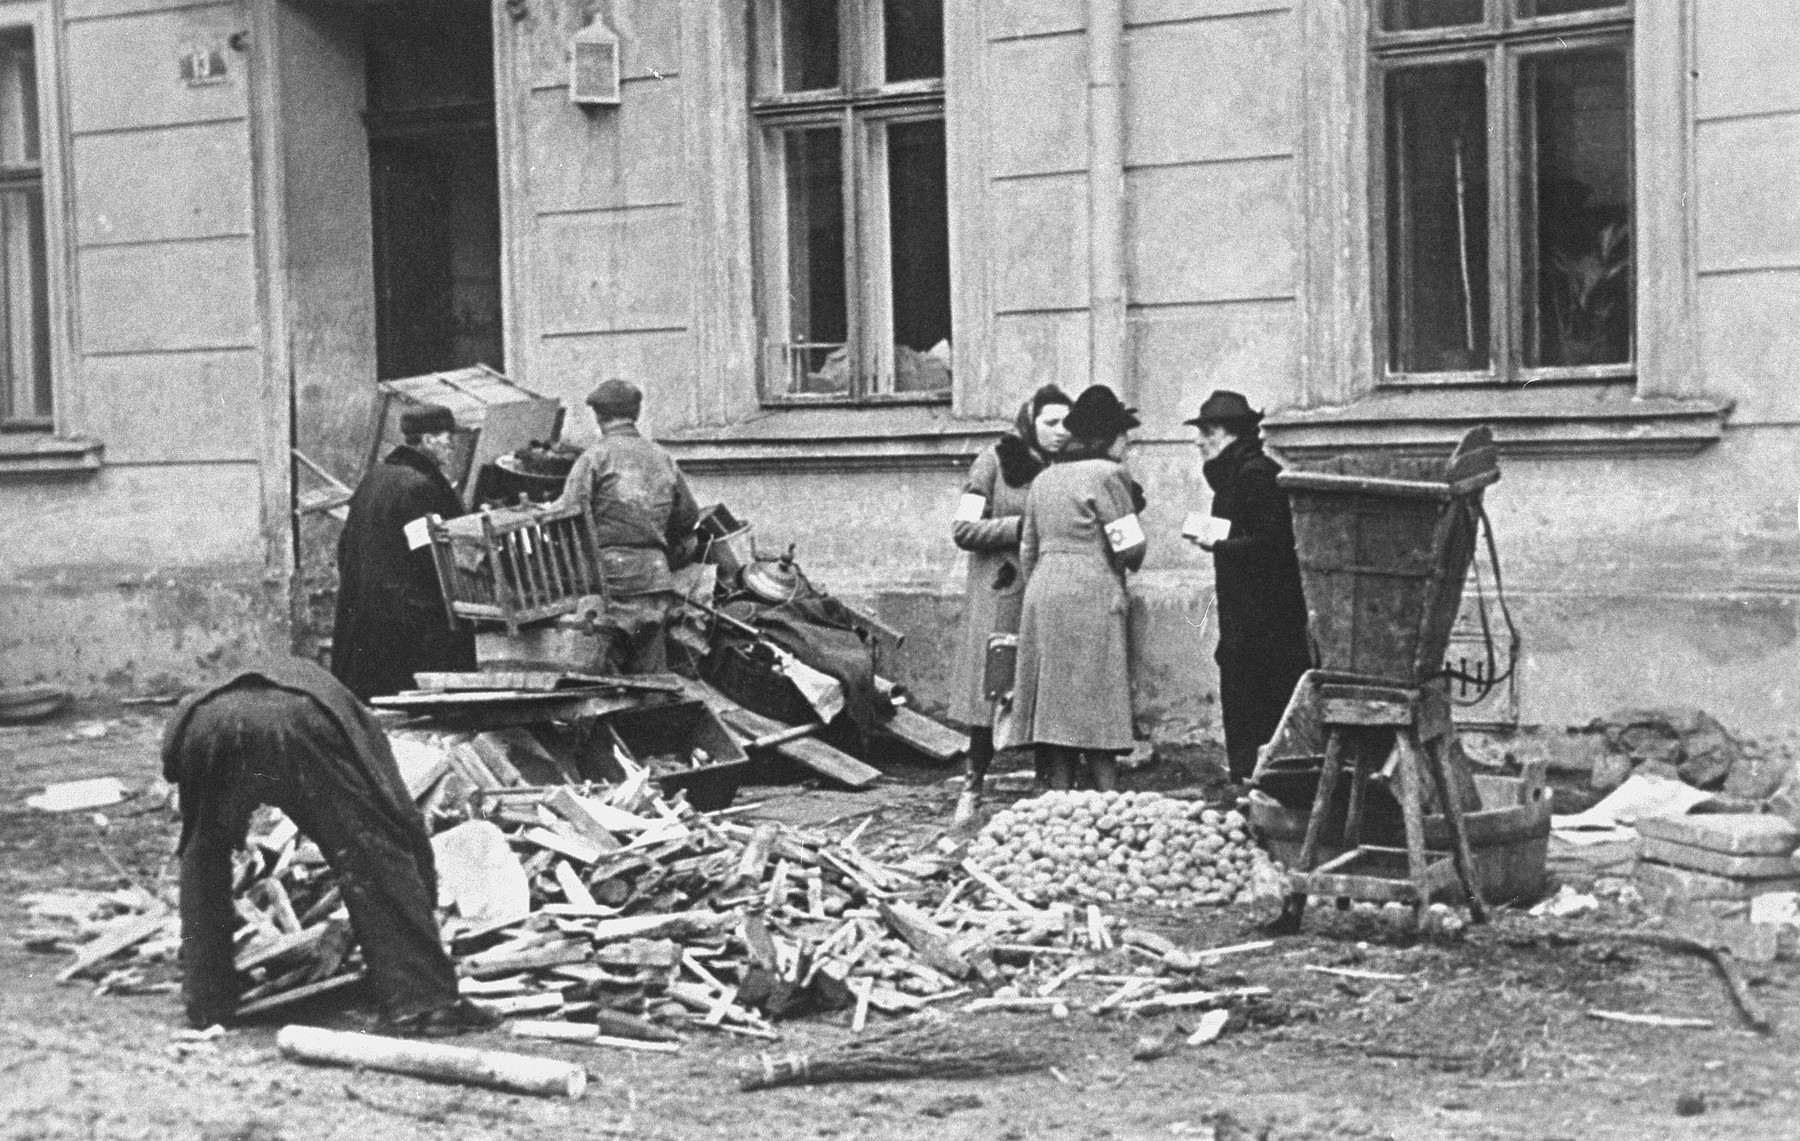 A group of Jews chop up furniture to use as fuel in the Krakow ghetto.